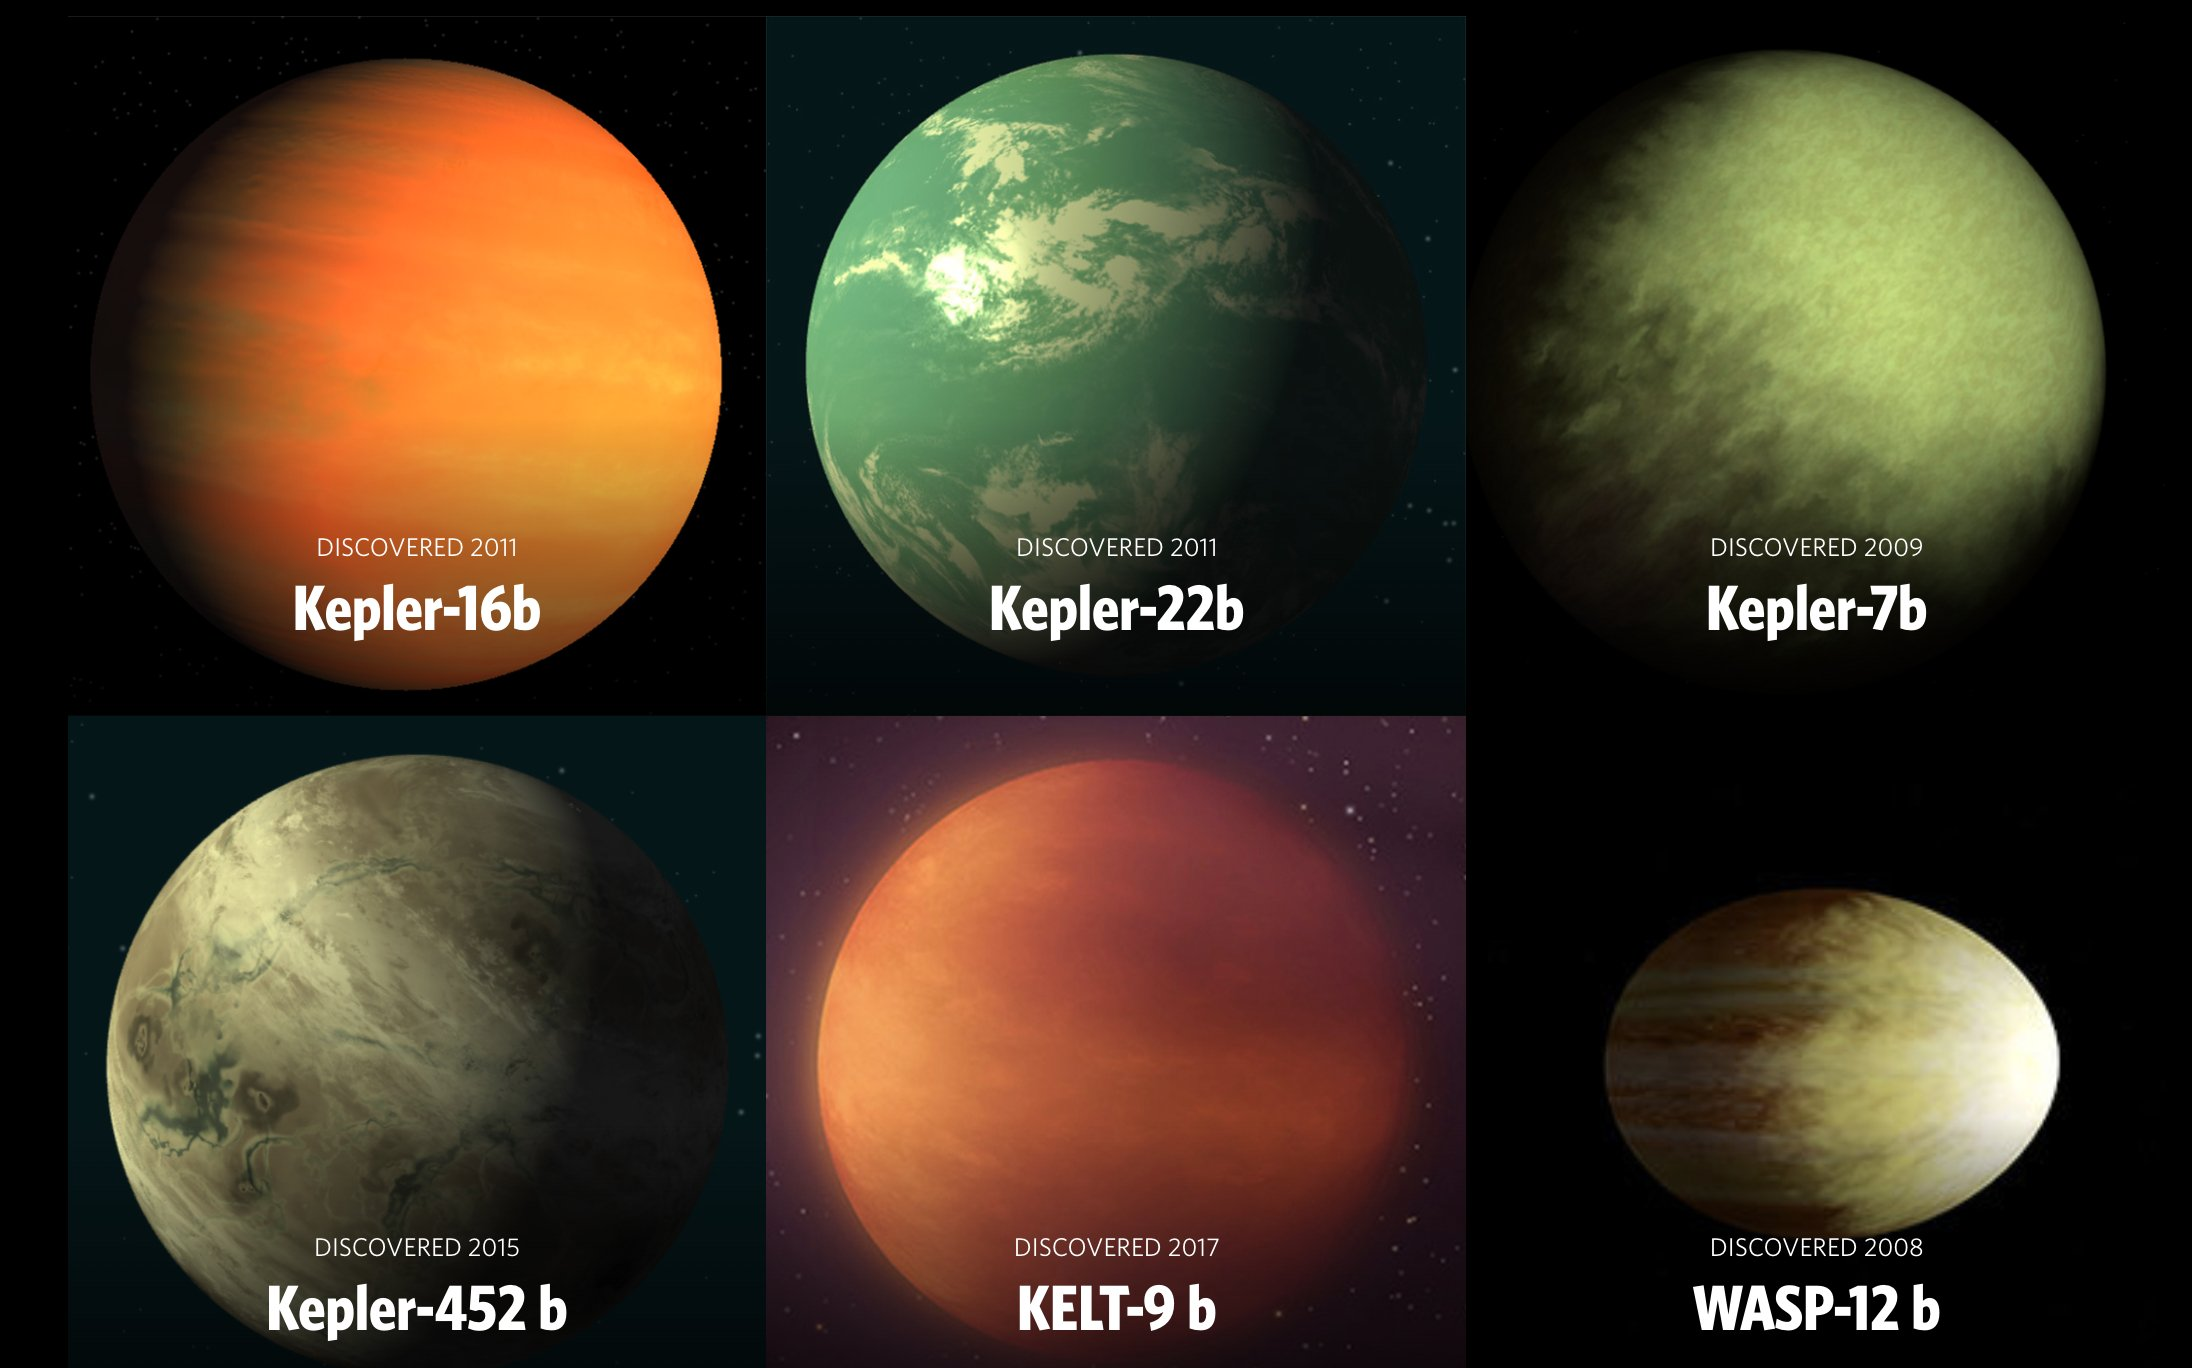 A gallery view of six different exoplanets: Kepler-16b, Kepler-22b, Kepler 7b, Kepler-452b, KELT-9b and WASP-12b